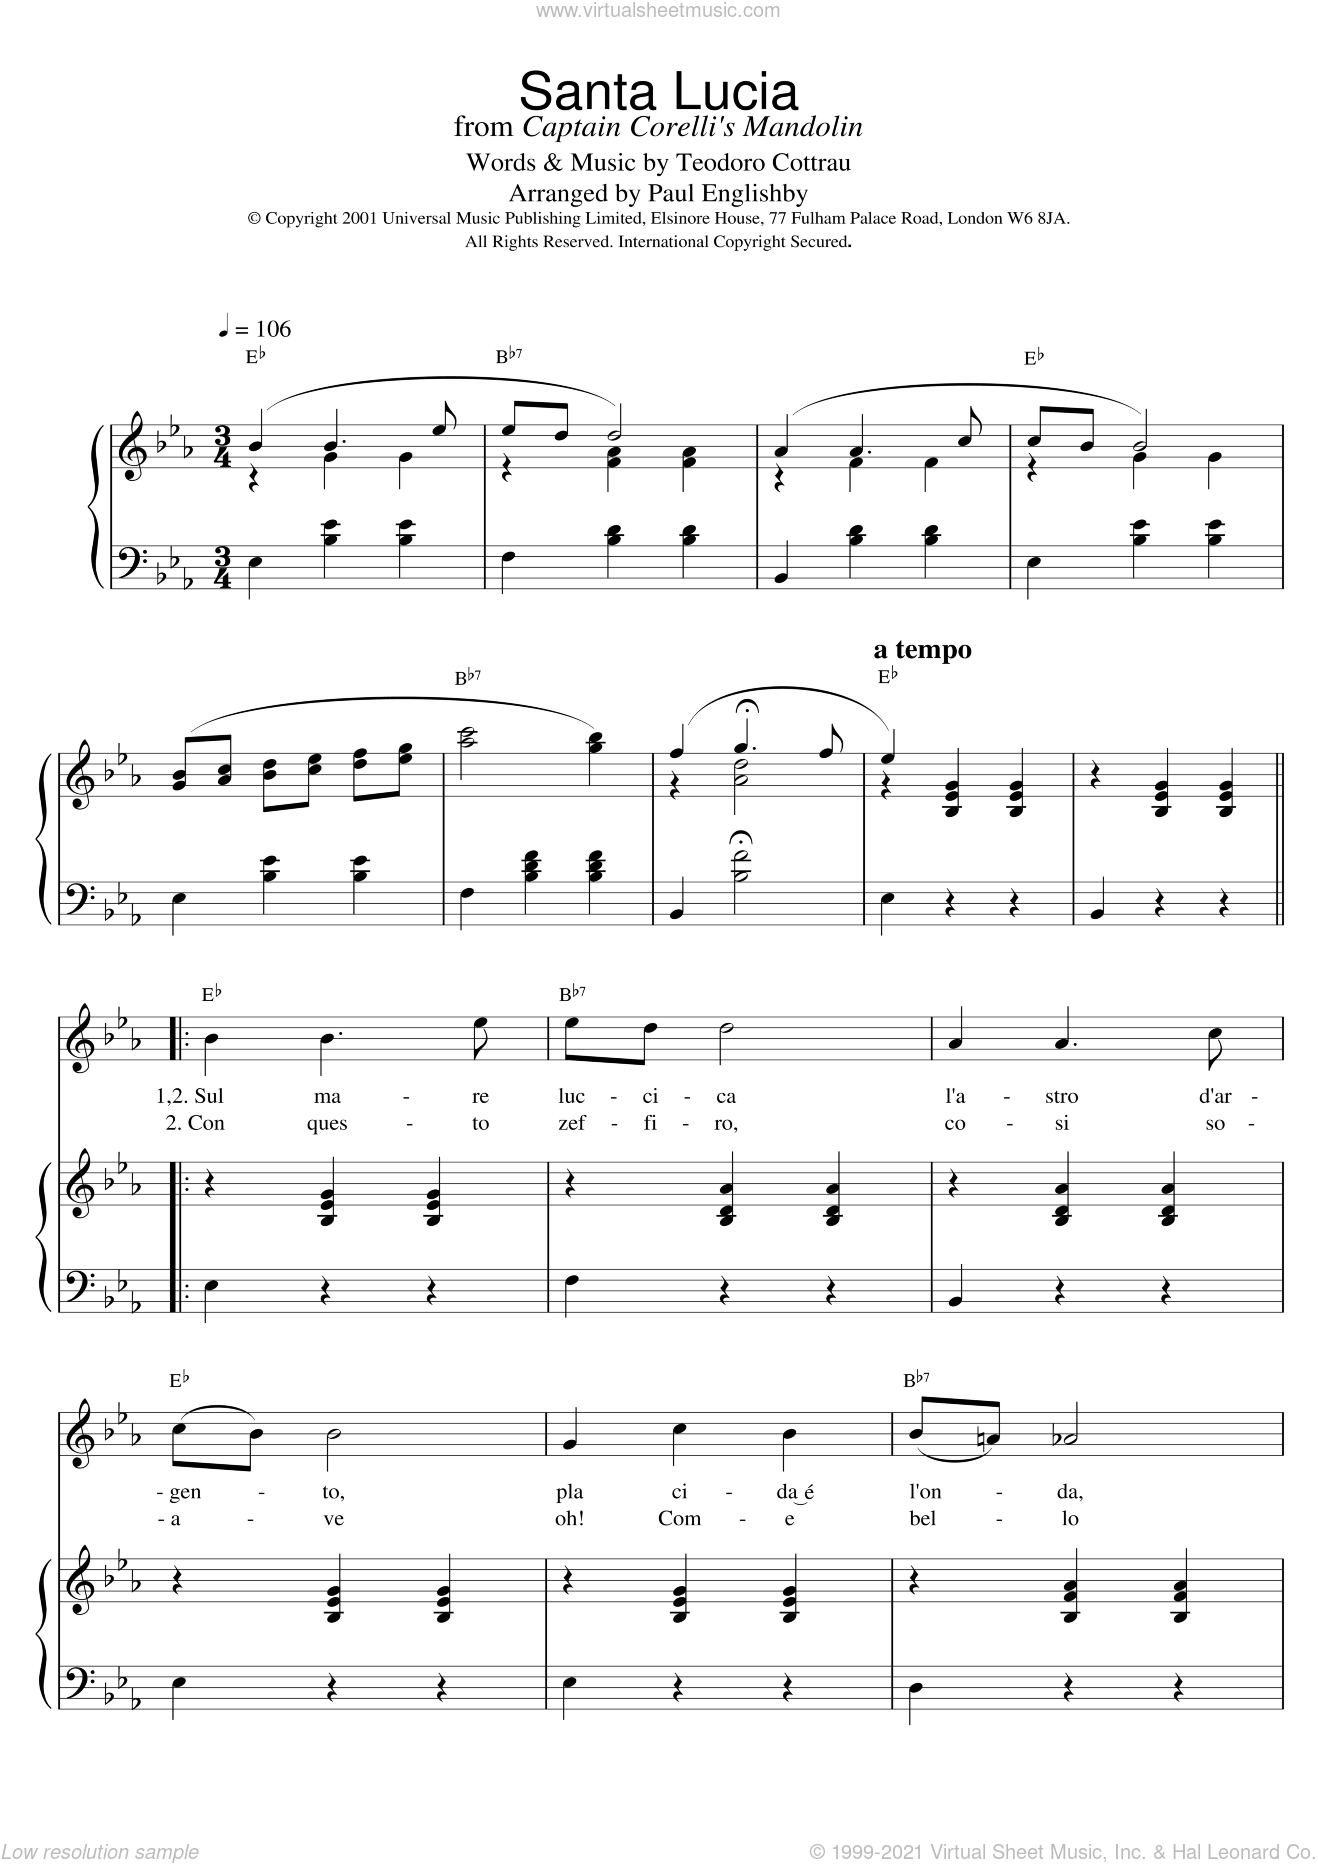 Santa Lucia sheet music for voice, piano or guitar by Teodoro Cottrau